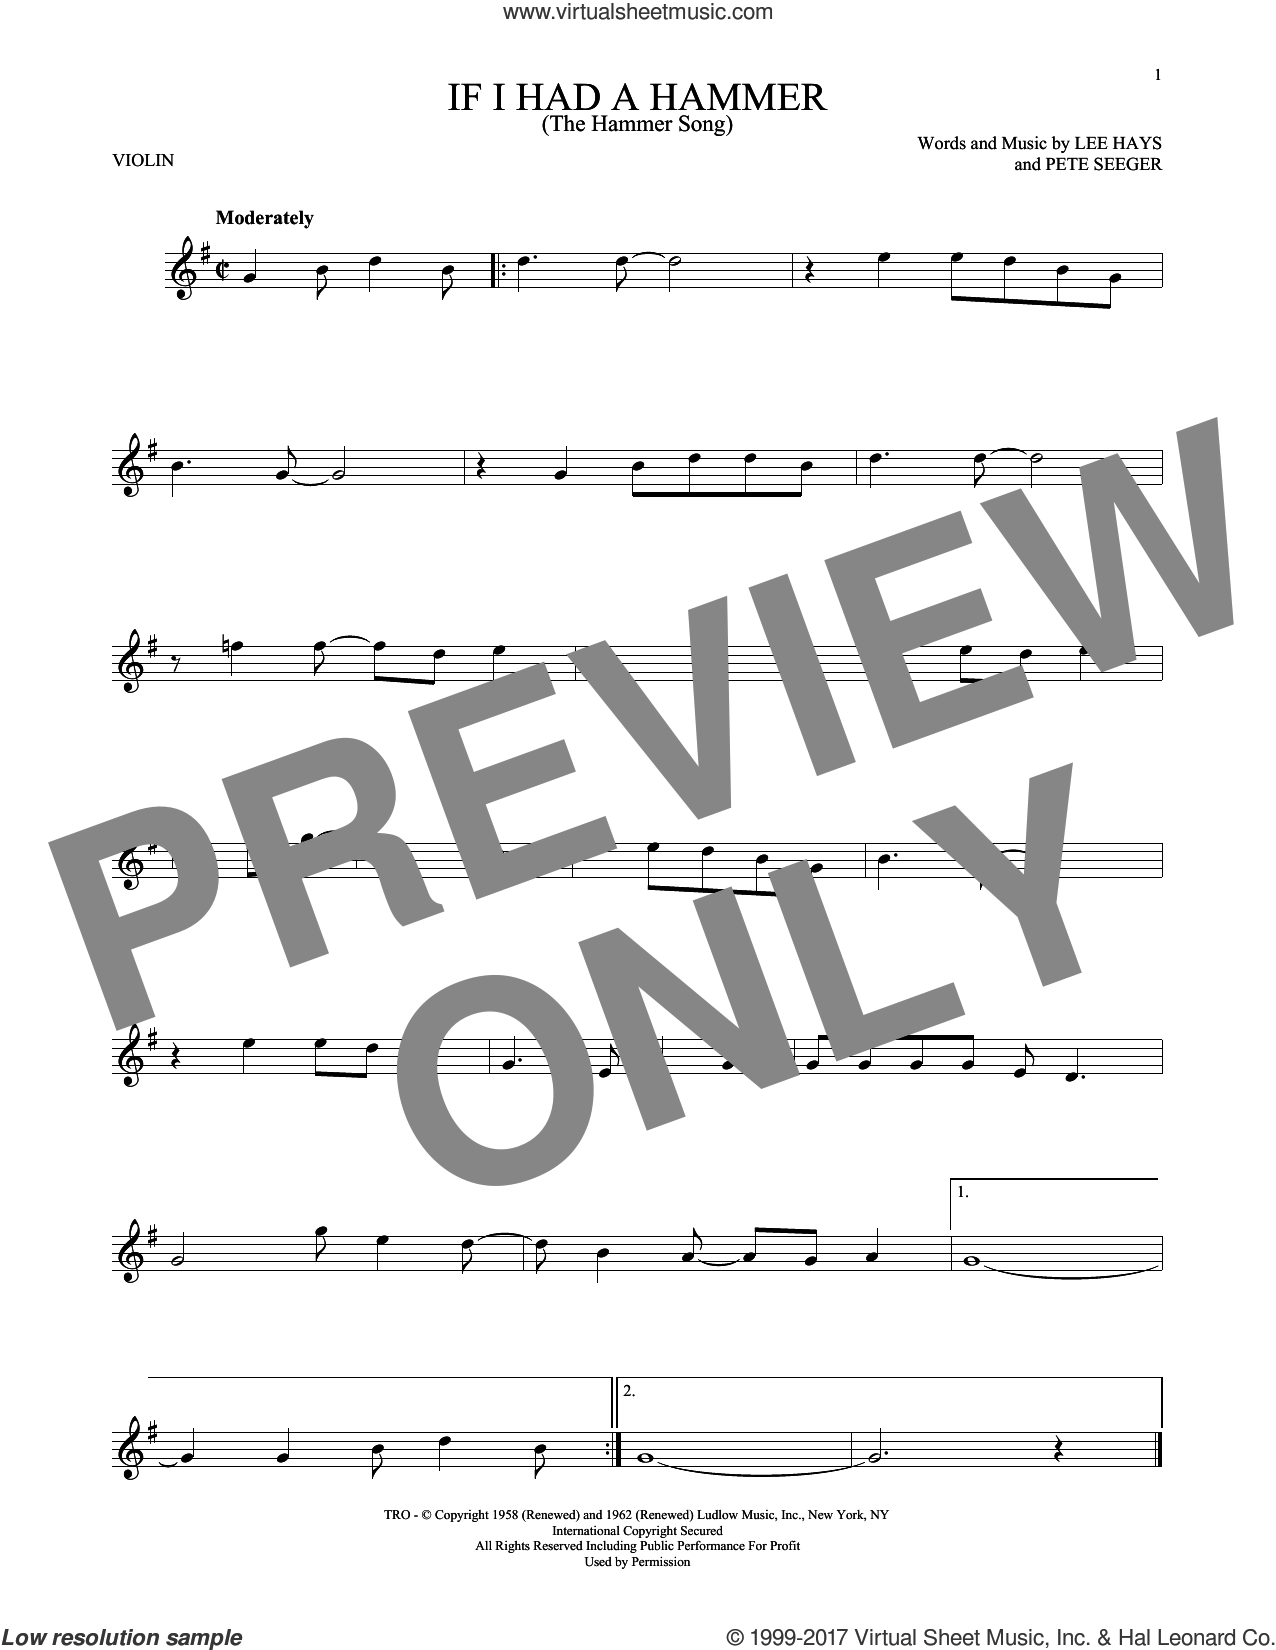 If I Had A Hammer (The Hammer Song) sheet music for violin solo by Peter, Paul & Mary, Lee Hays and Pete Seeger, intermediate skill level